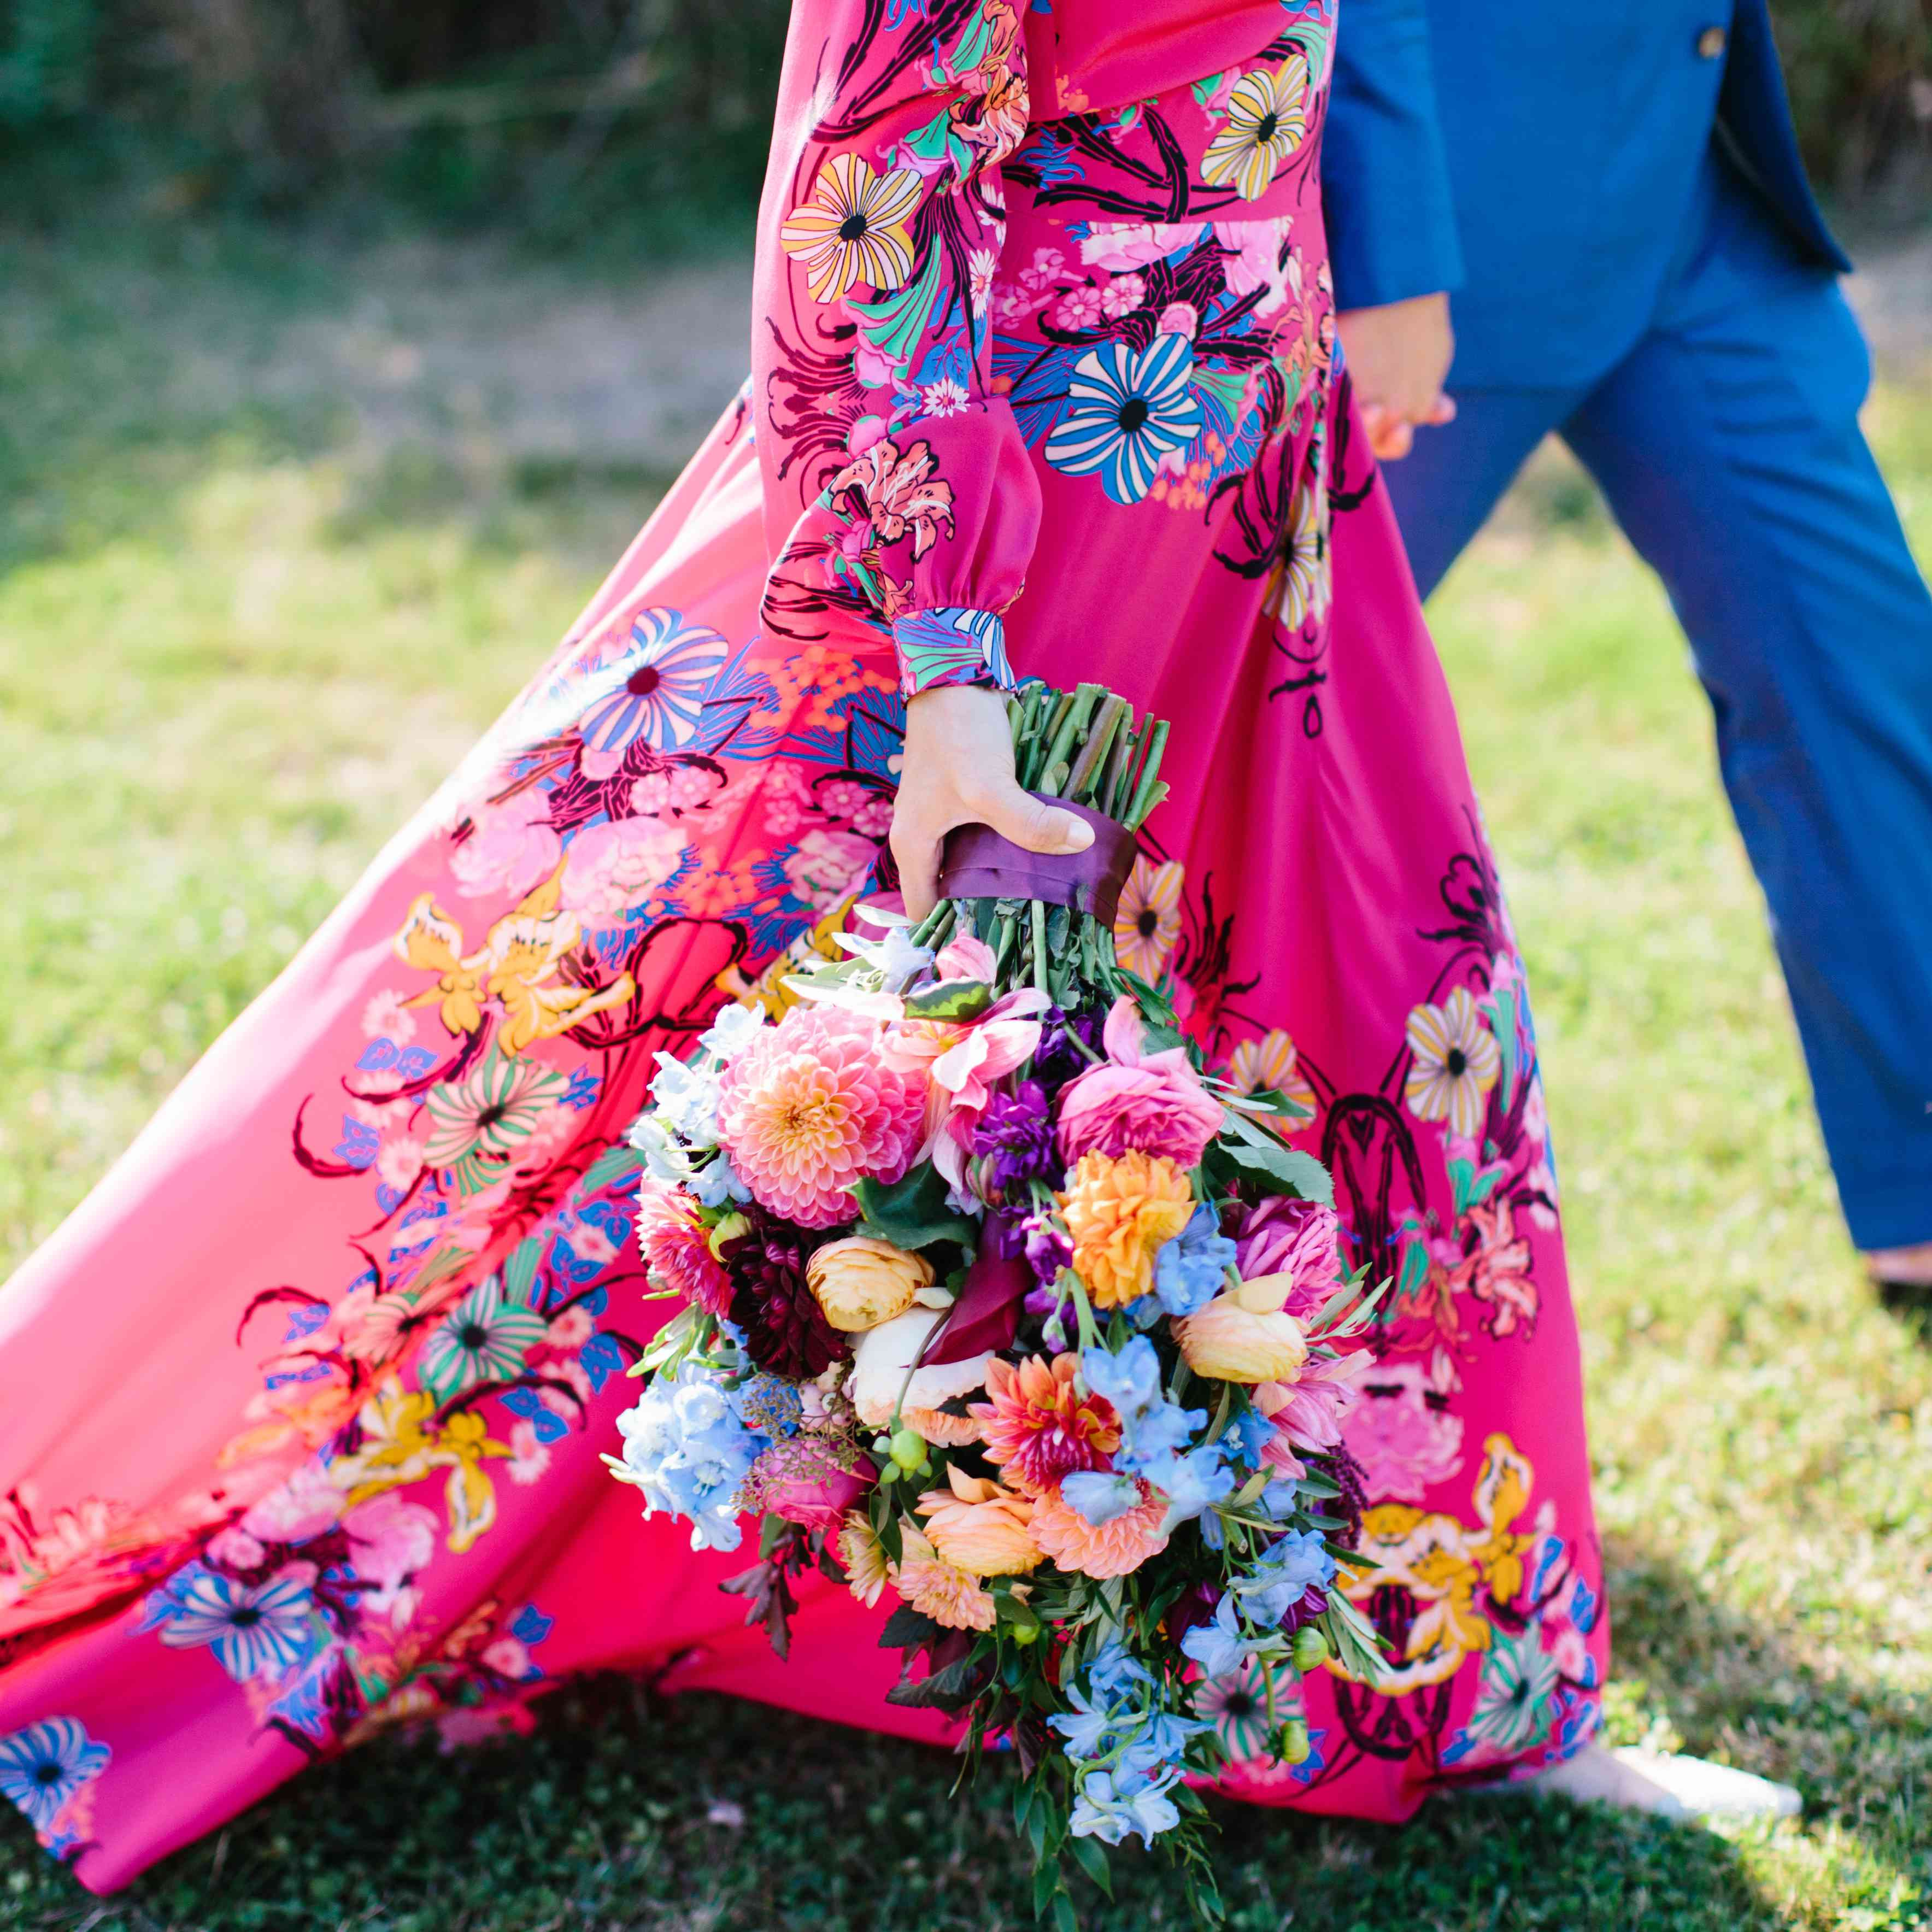 woman wearing colorful dress holding flowers